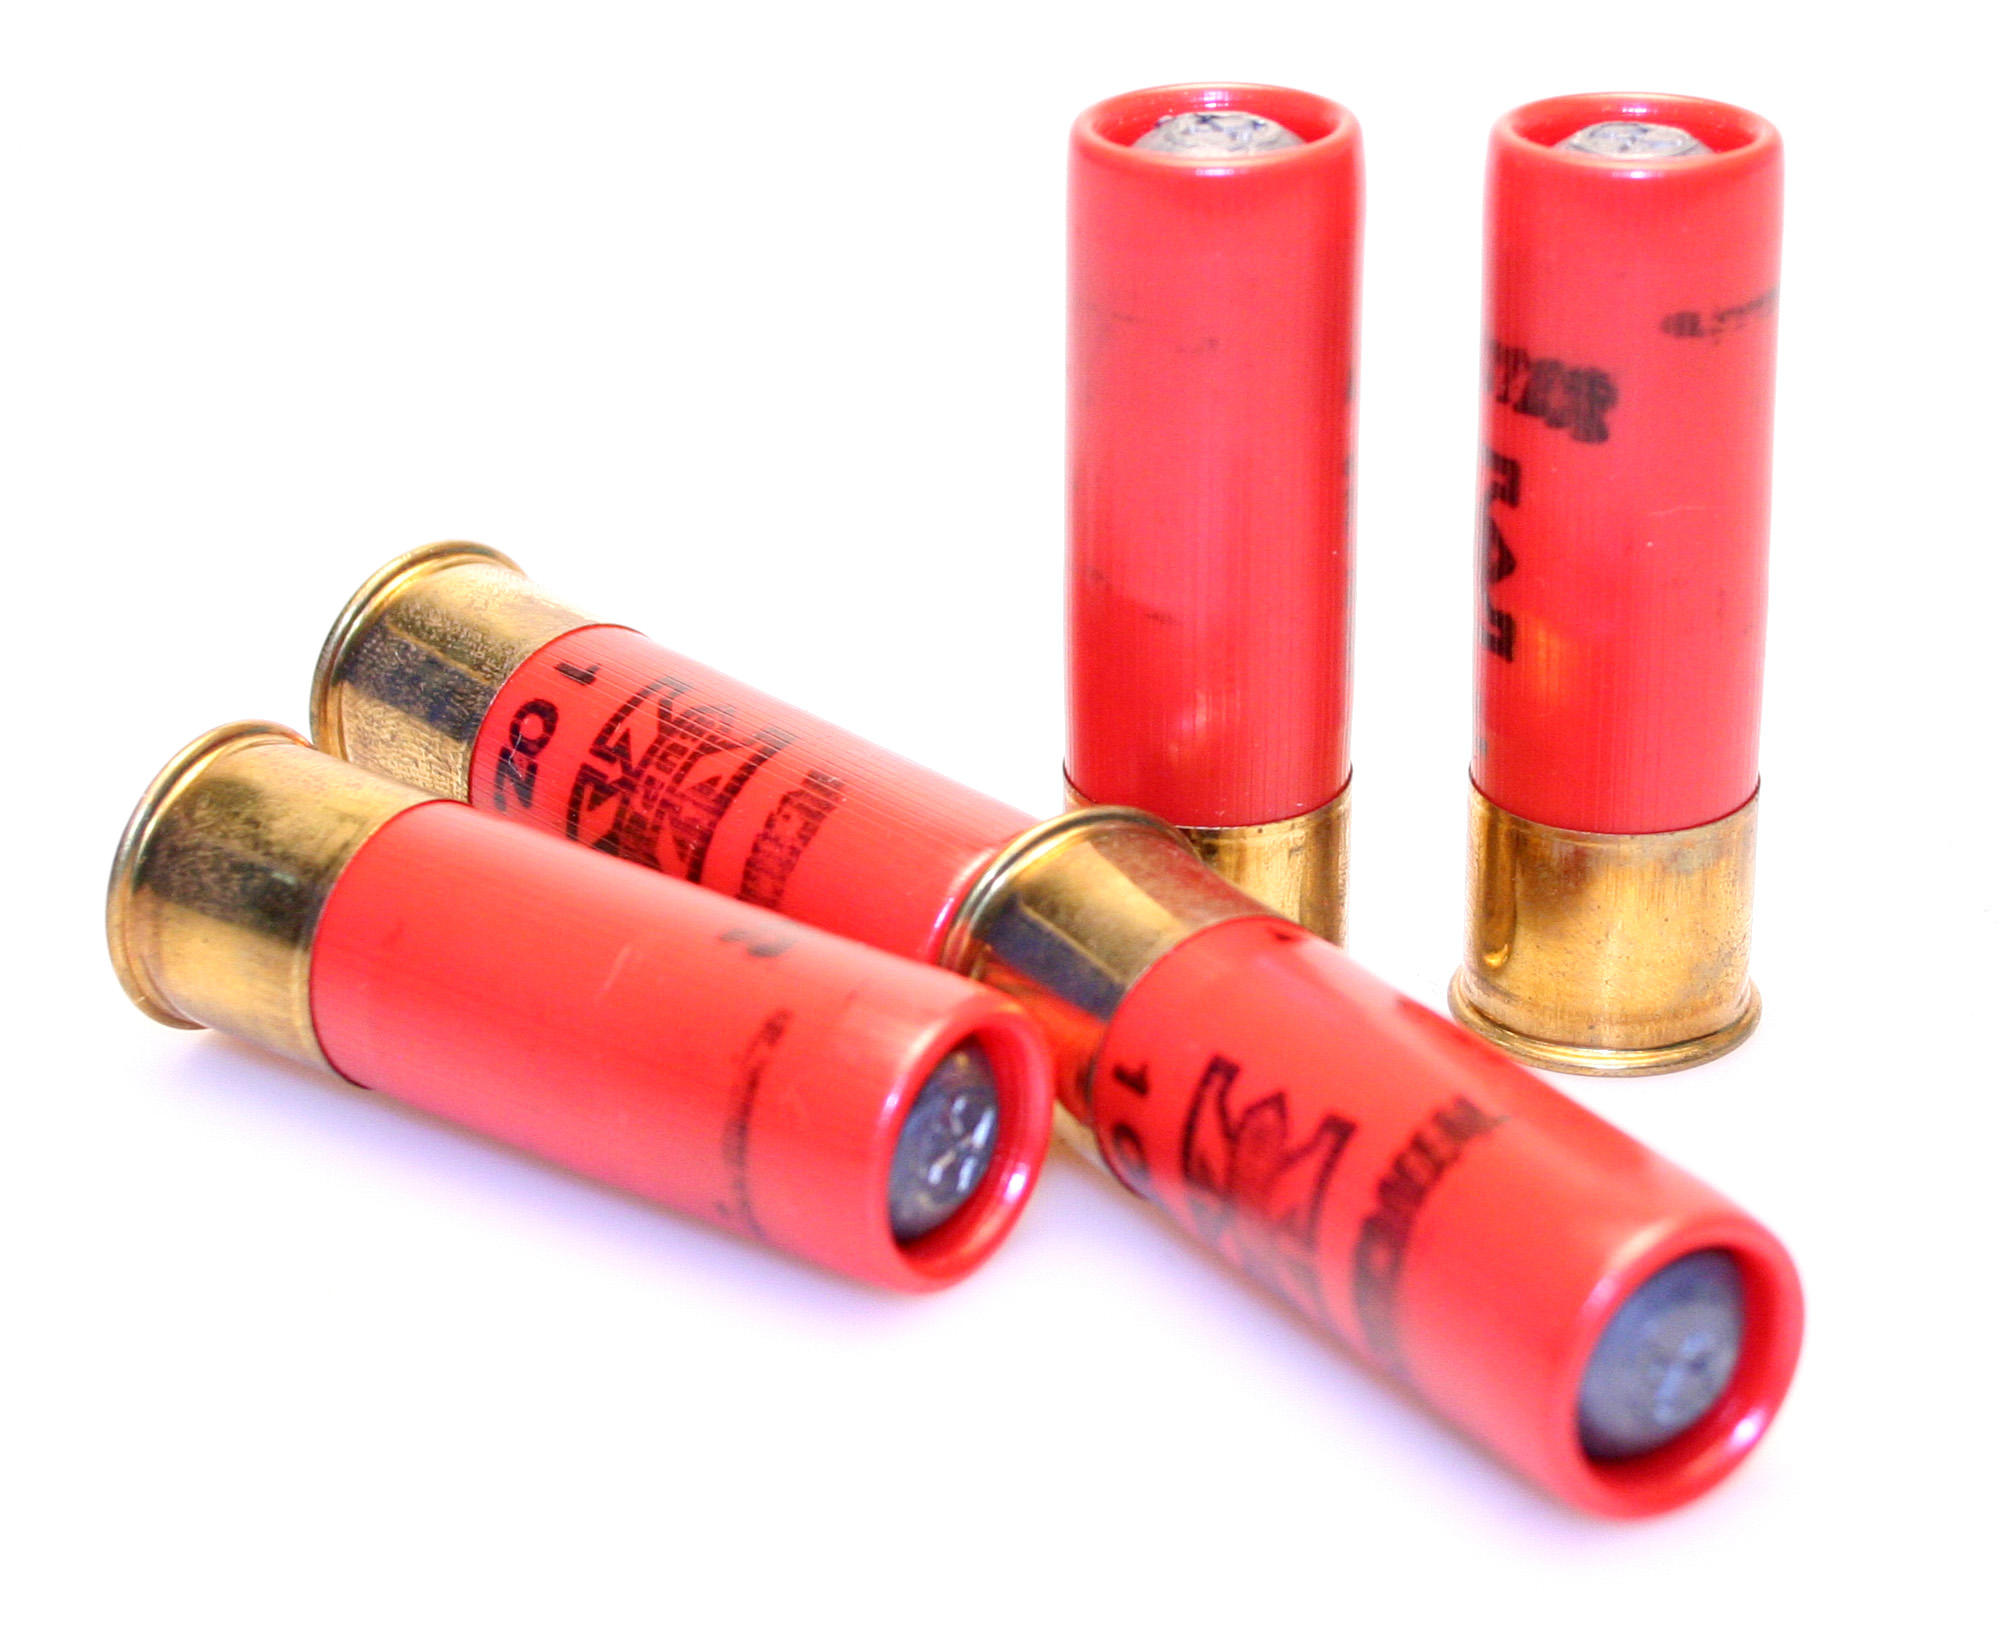 12 Gauge Shotgun Shells SLUG 1 by eviln8 on DeviantArt